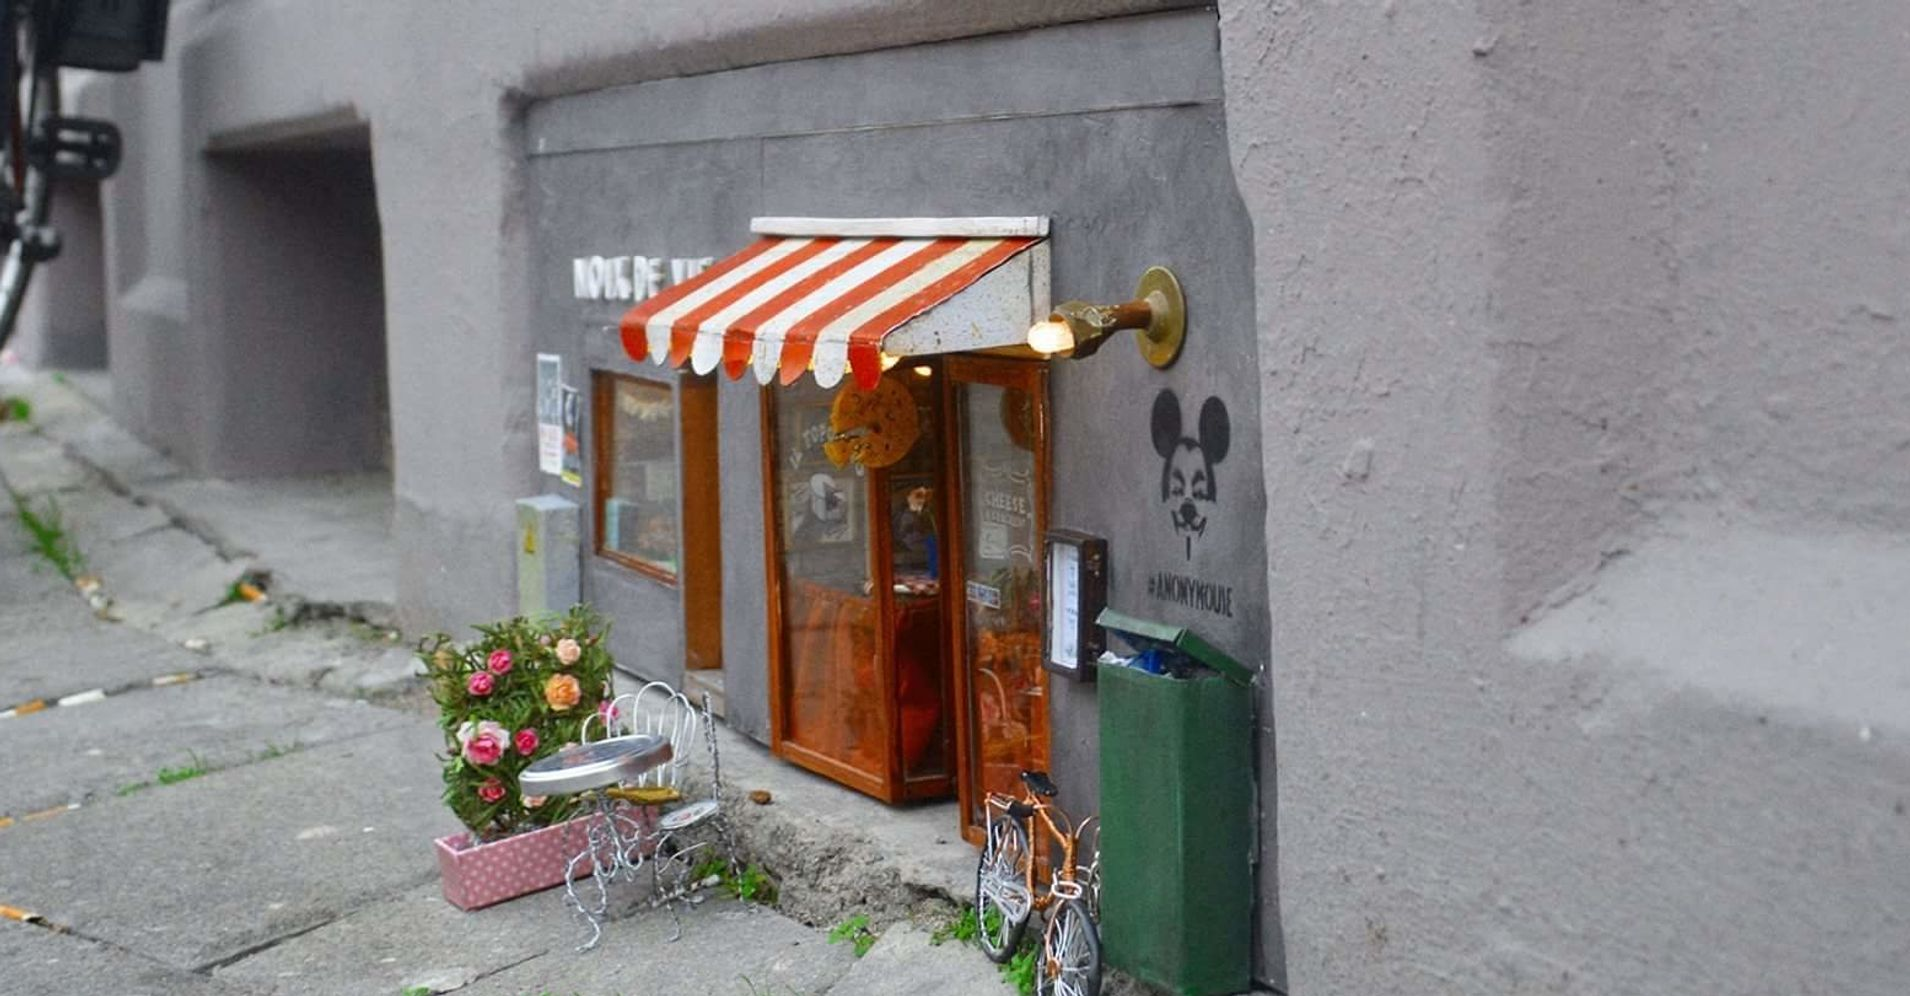 Blue Ribbon Bakery Kitchen Tiny Magical Shops For Mice Are Popping Up In Sweden Huffpost